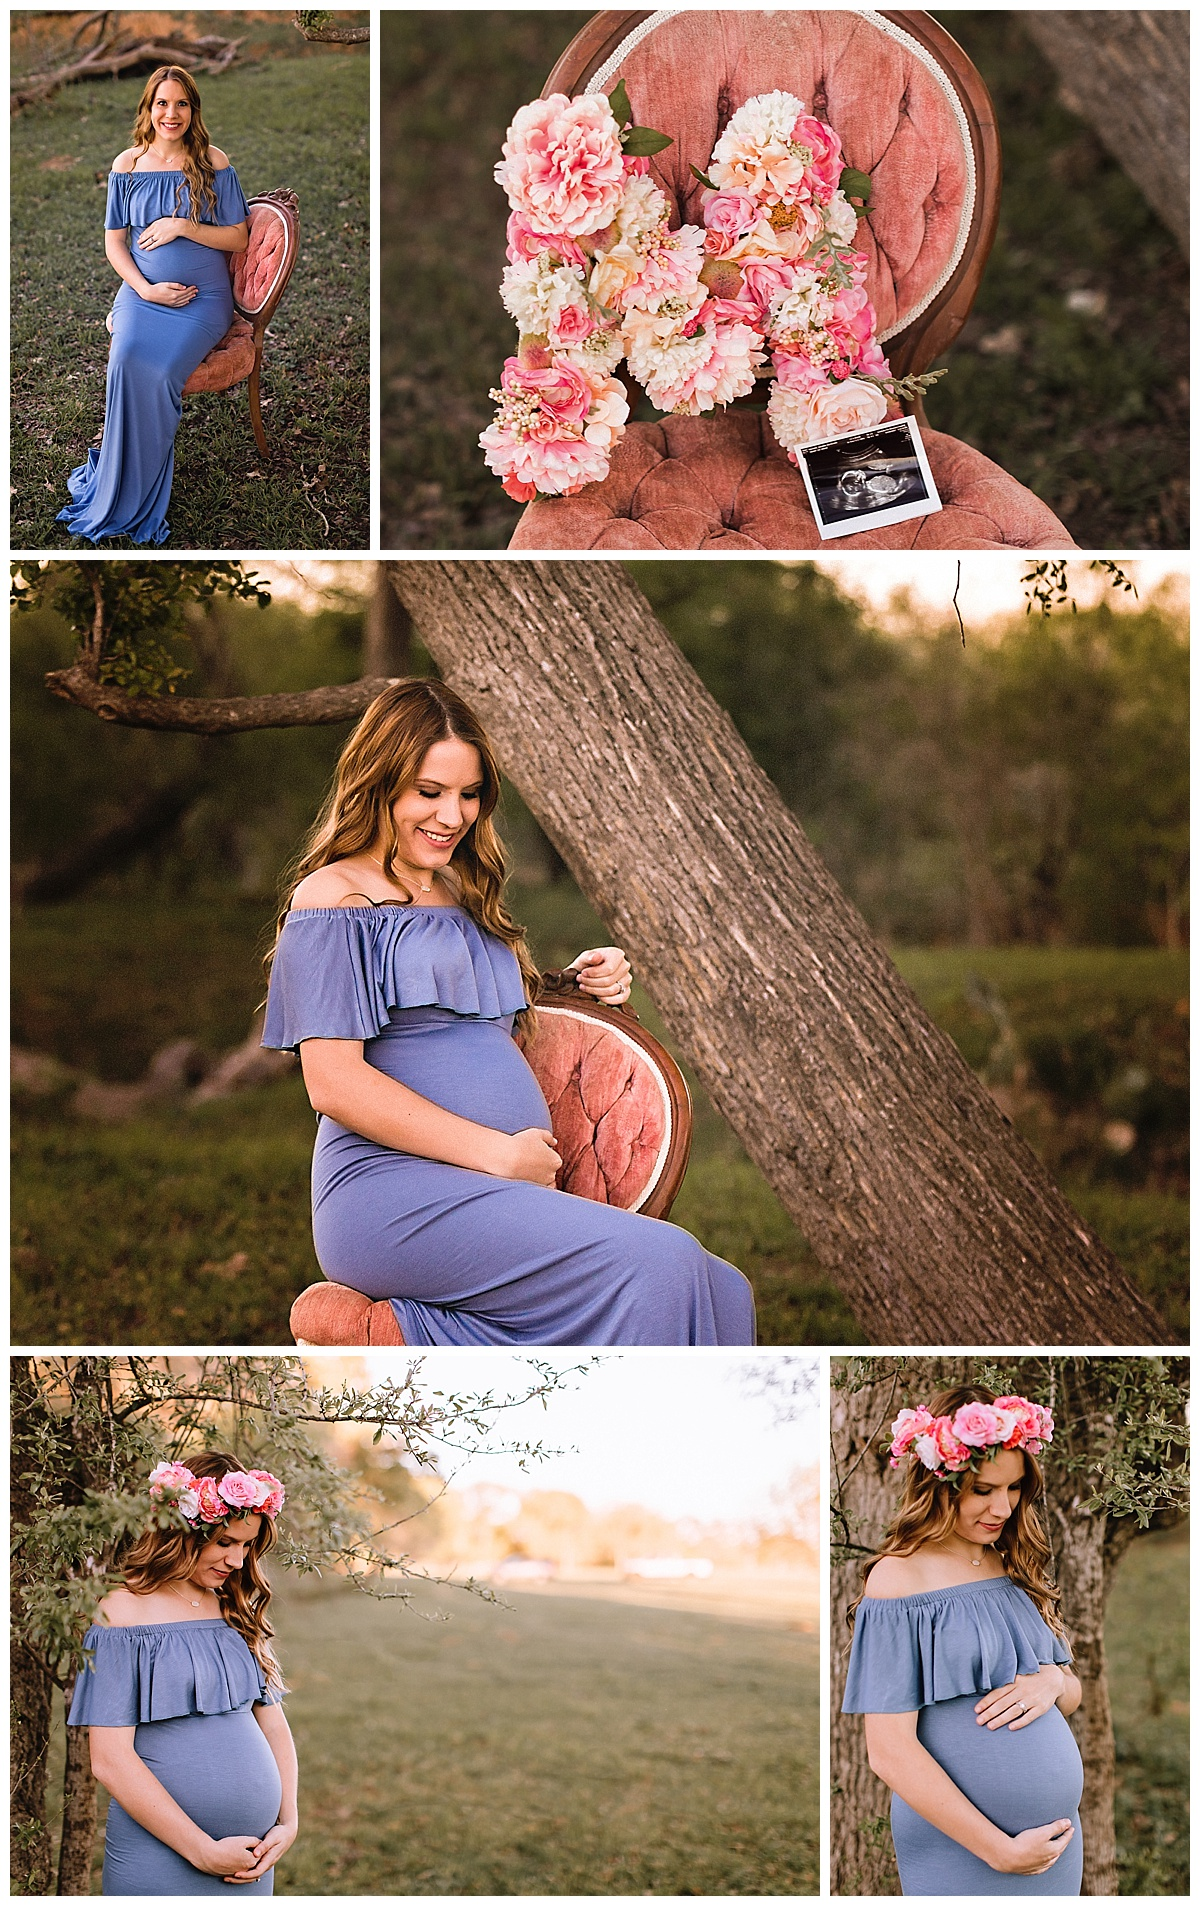 Carly-Barton-Photography-Maternity-Session-Couples-Texas-Hill-Country-Polasek-Baby_0149